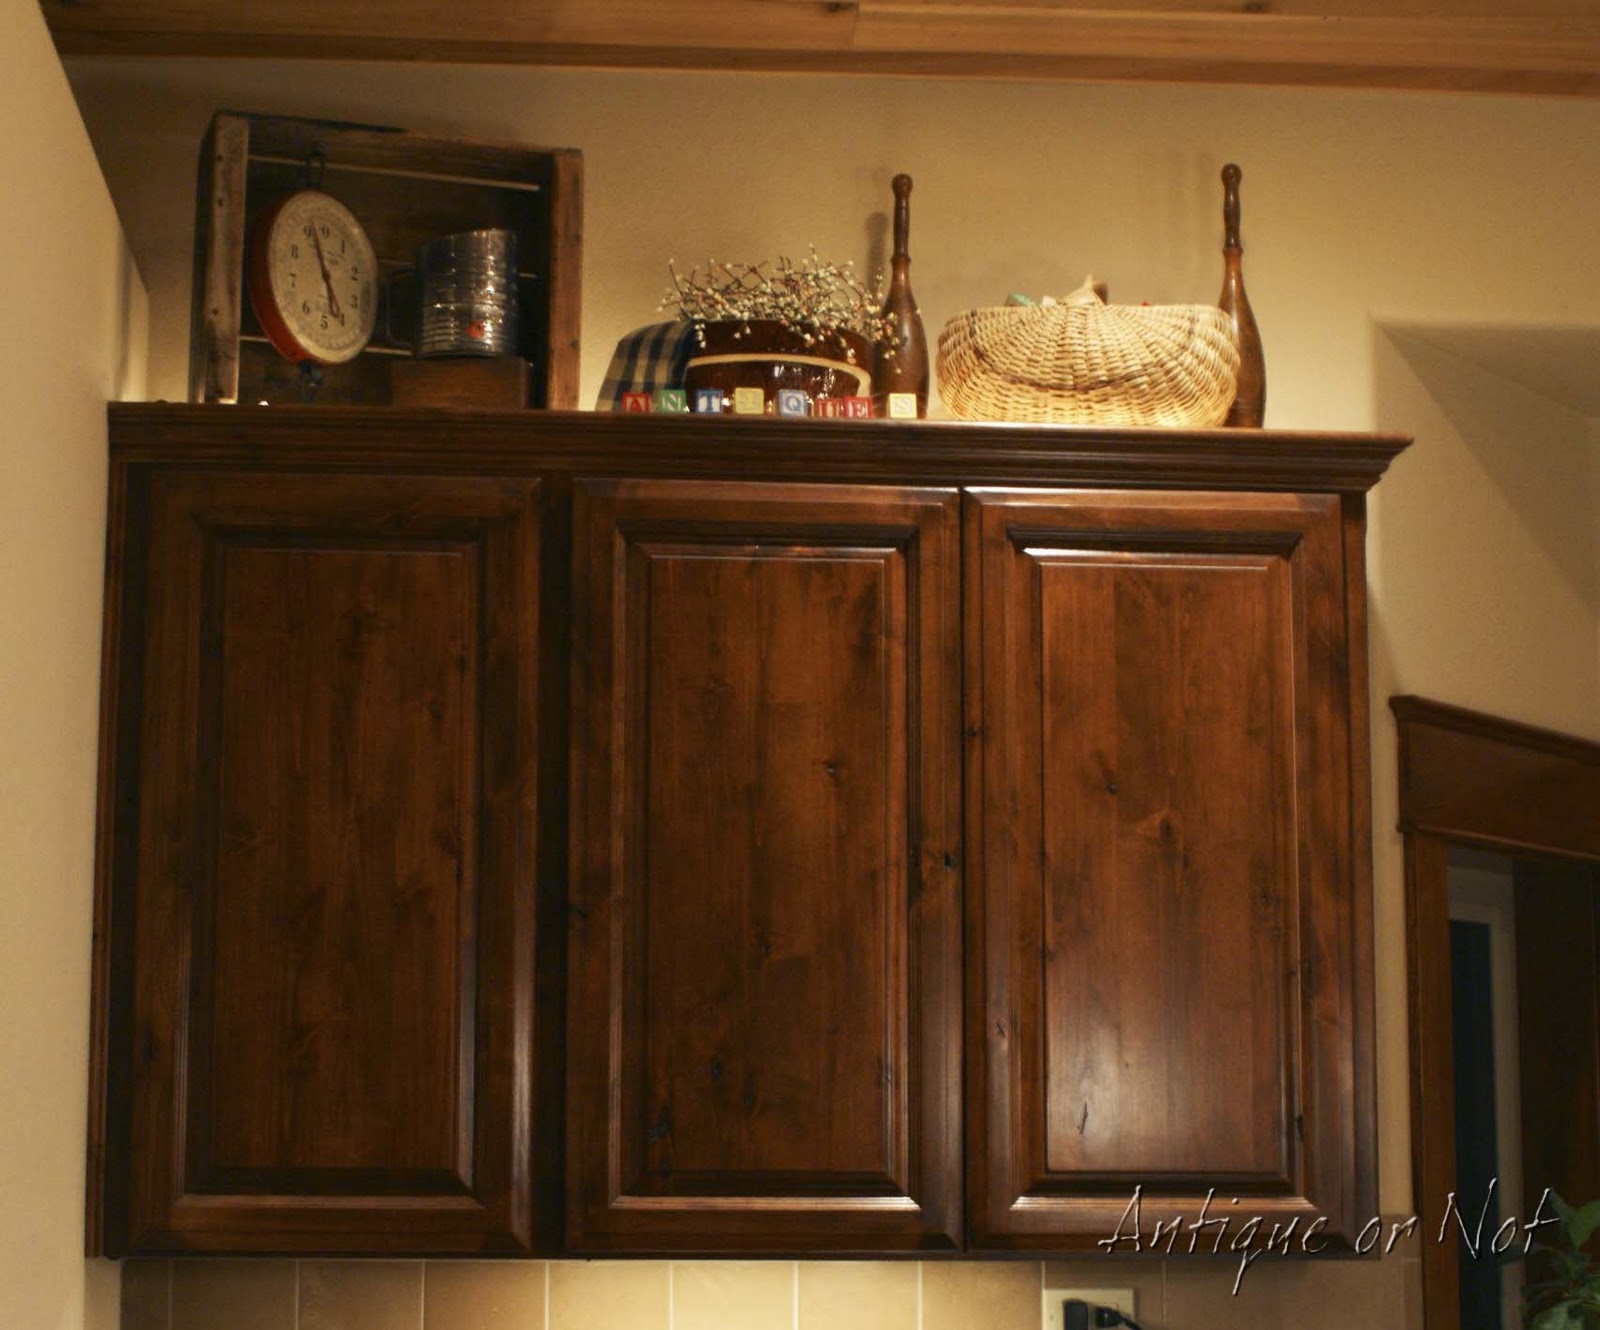 Antique or not decorating above your cabinets How to decorate top of cabinets